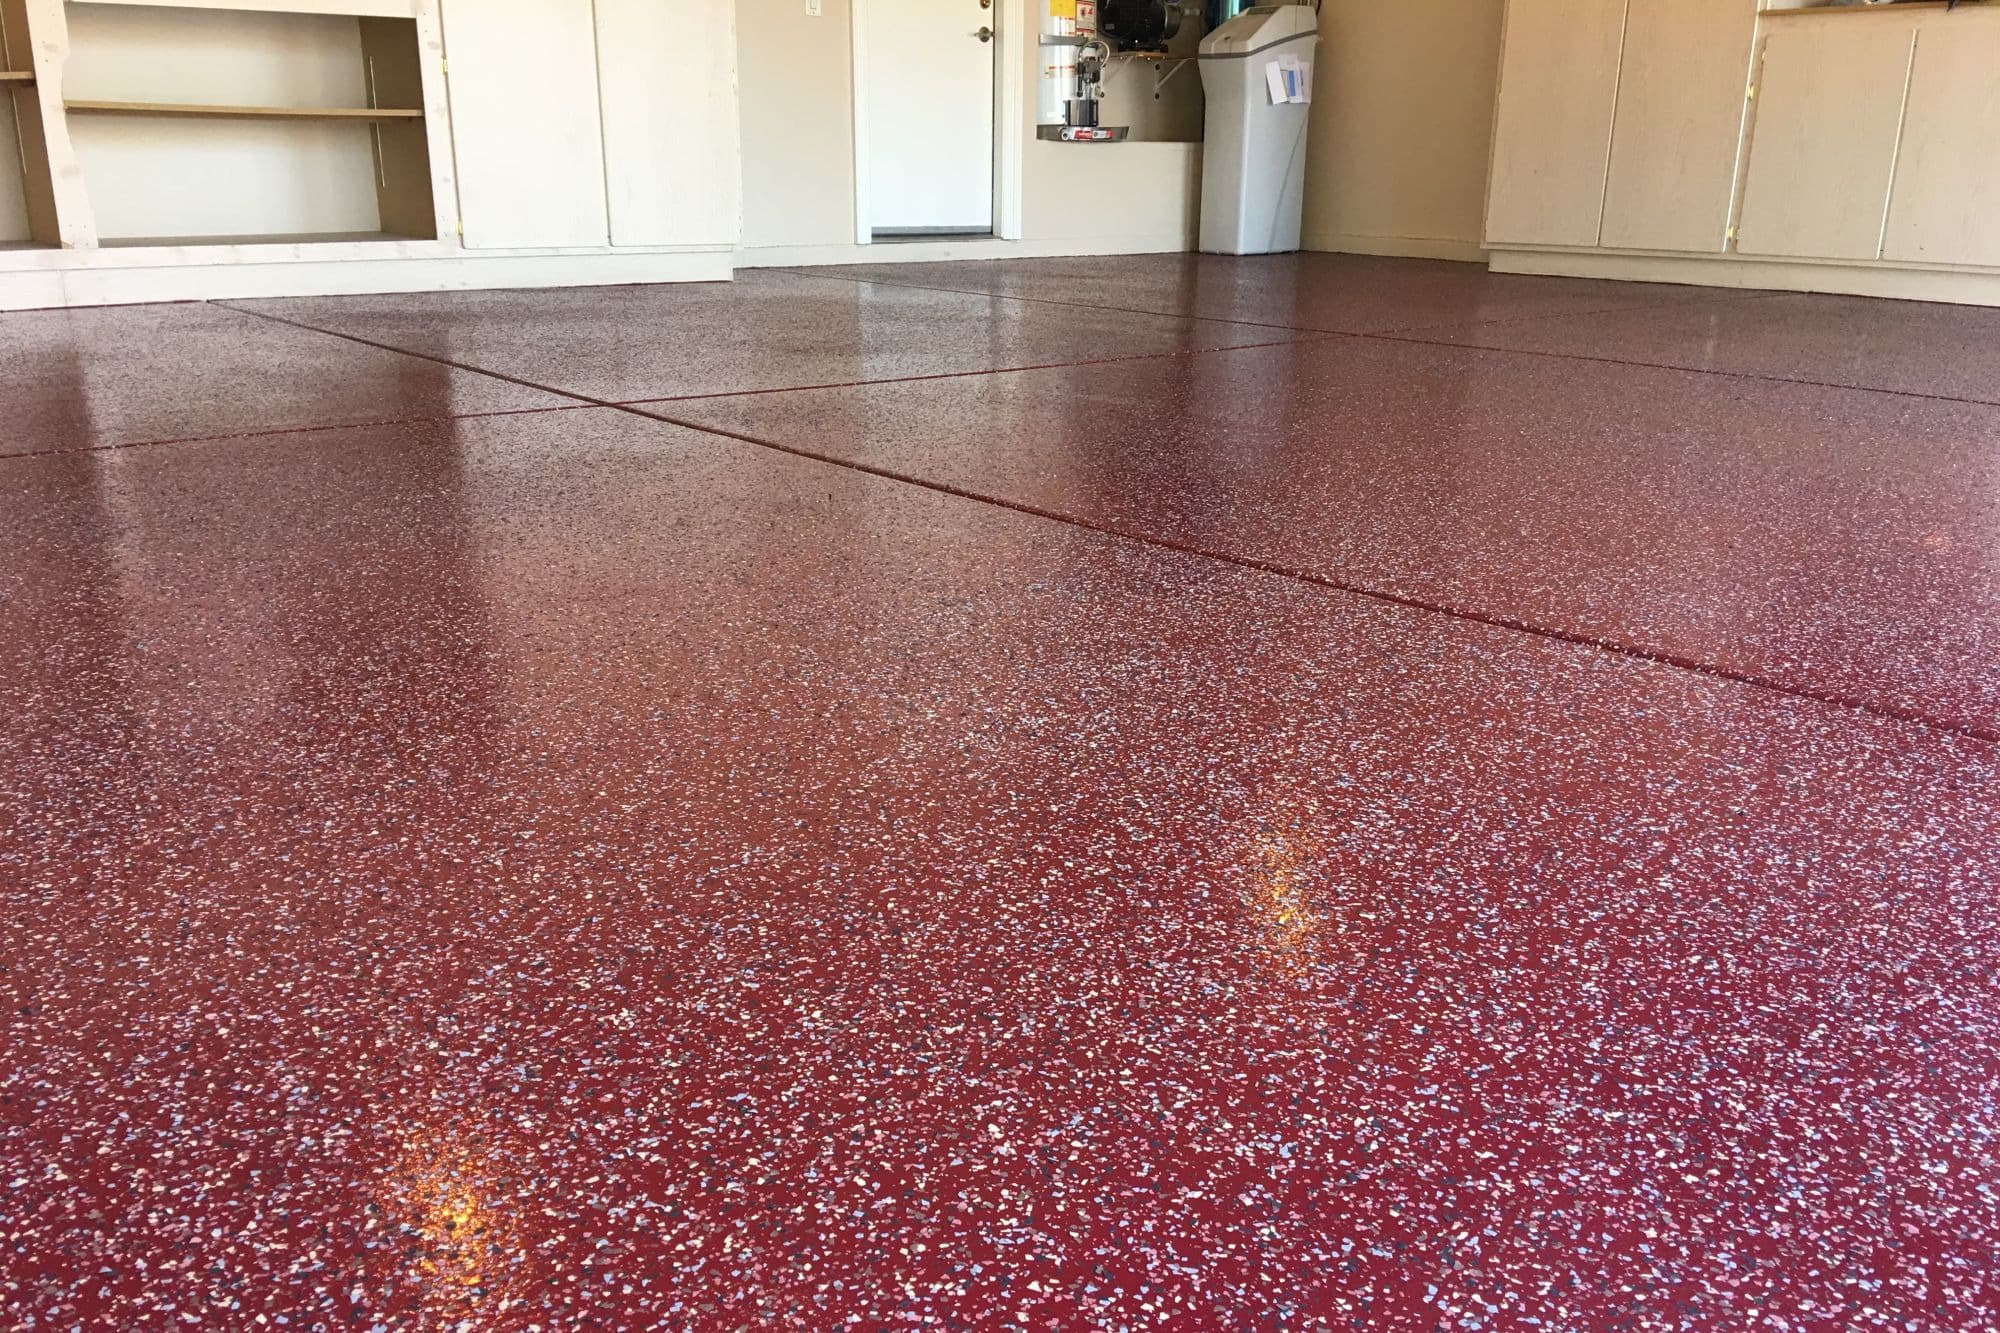 Garage Epoxy Coating With Decorative Flakes And Sealer